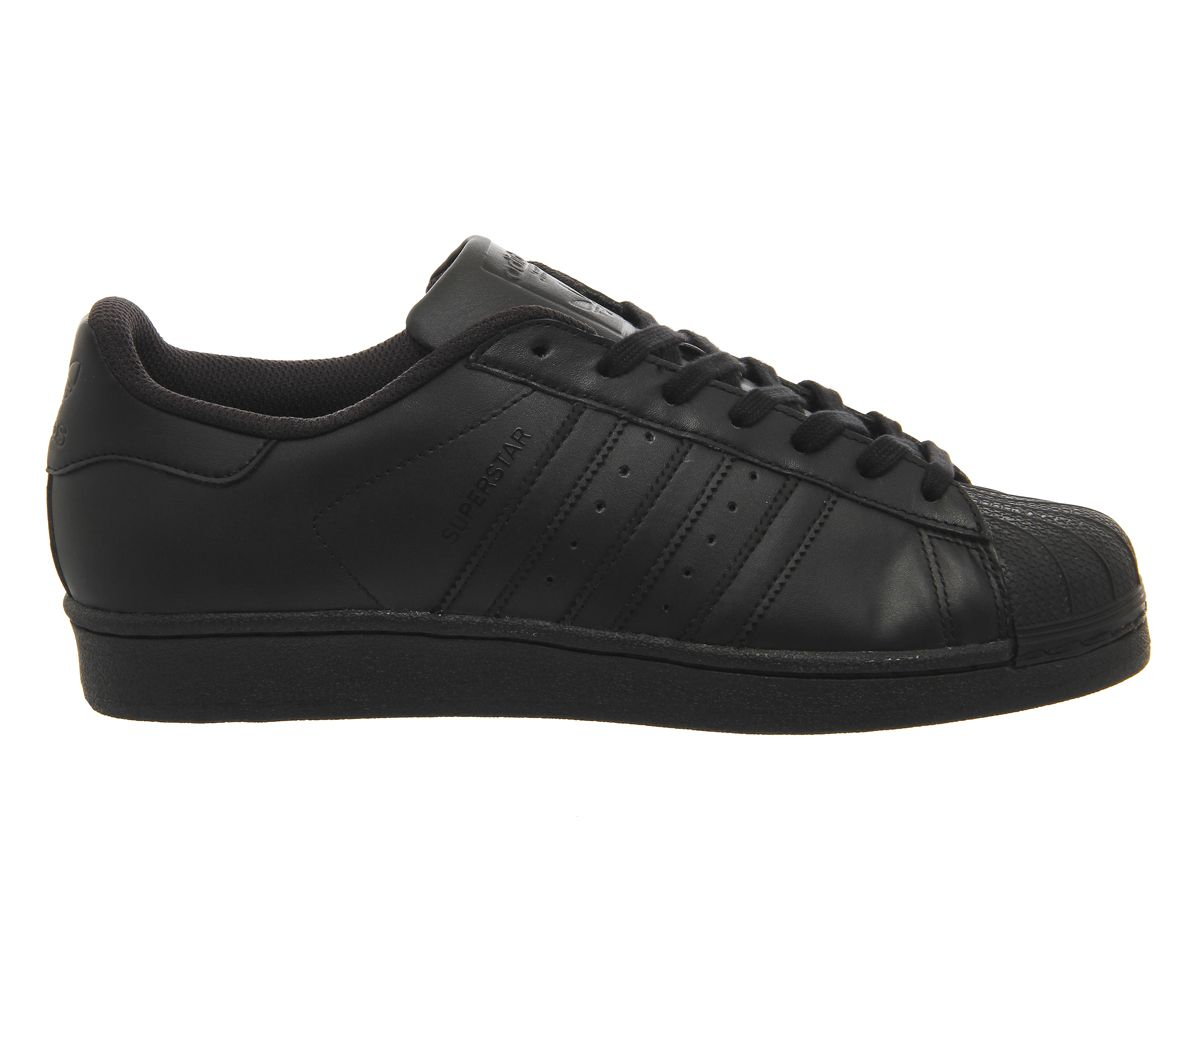 the best attitude 474f4 28aba Adidas Originals Mens Superstar 2 All Black Stripe Leather Retro Trainers